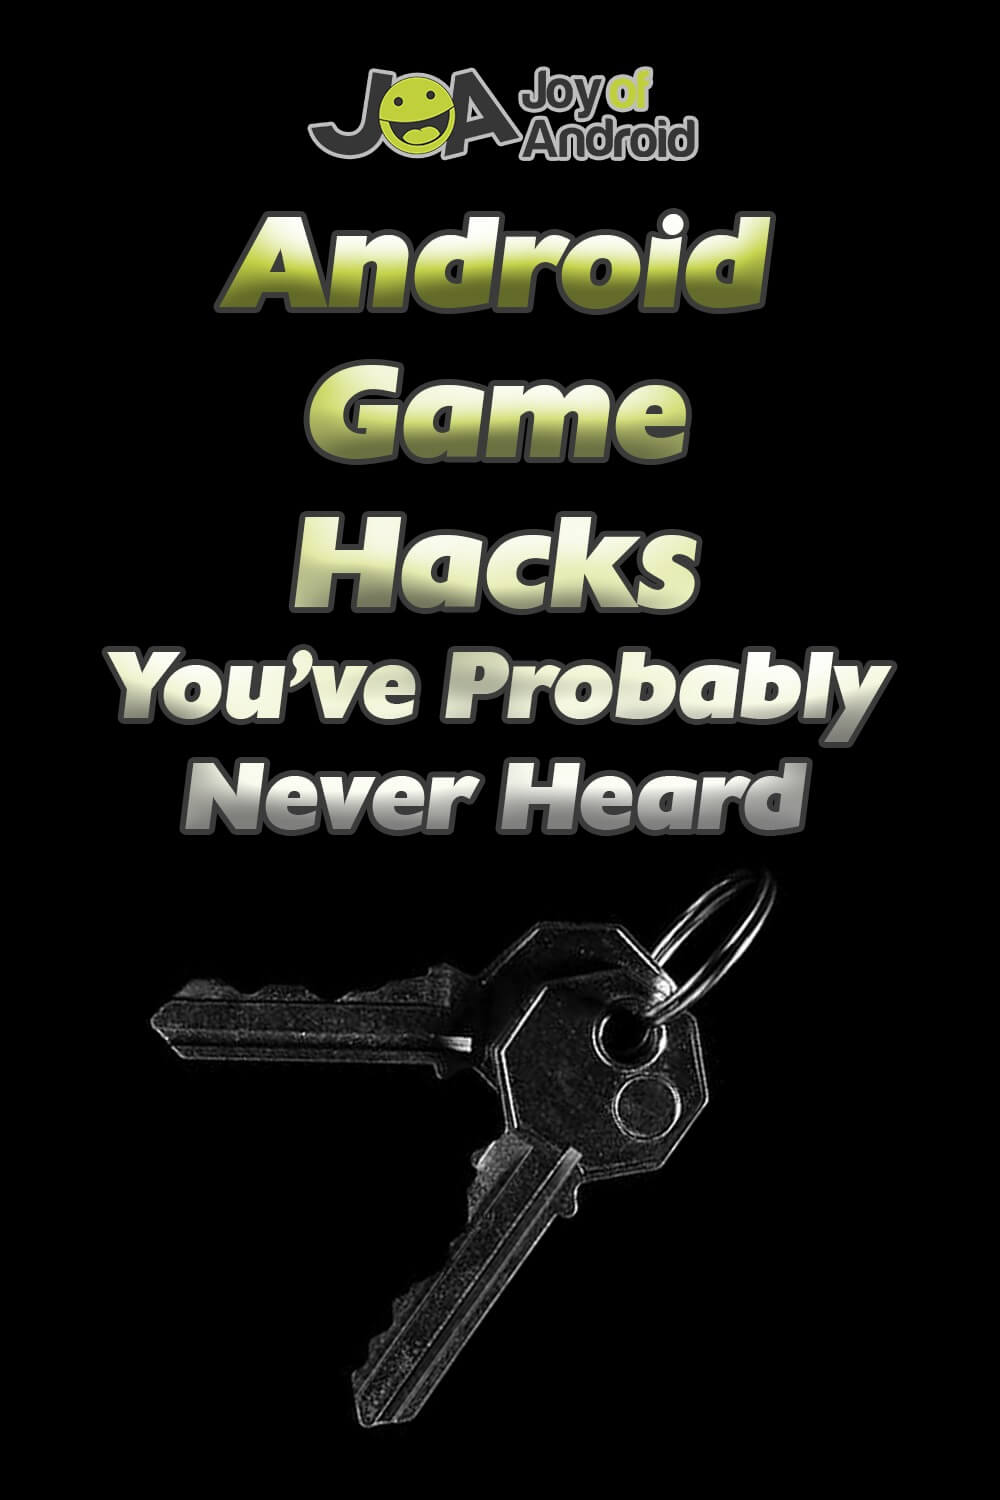 Android Game Hacks: Social media picture